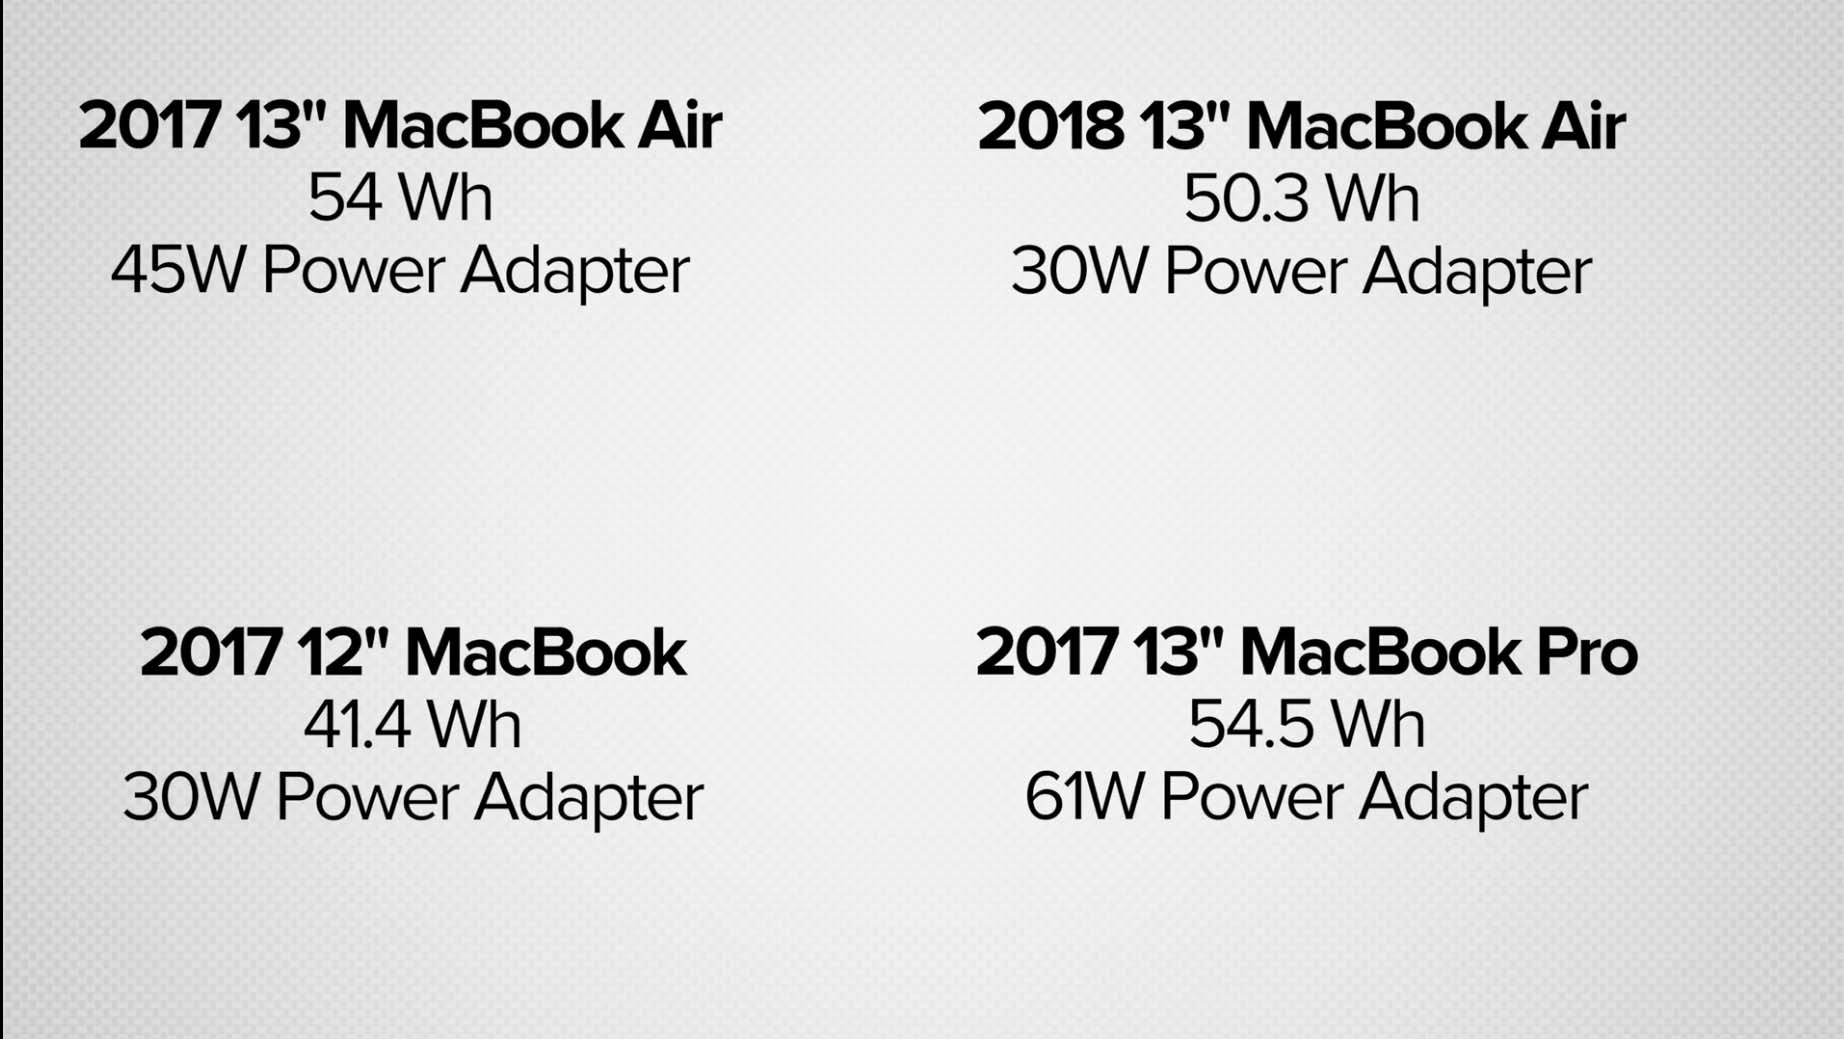 air-2018-vs-2017-vs-pro-13-power